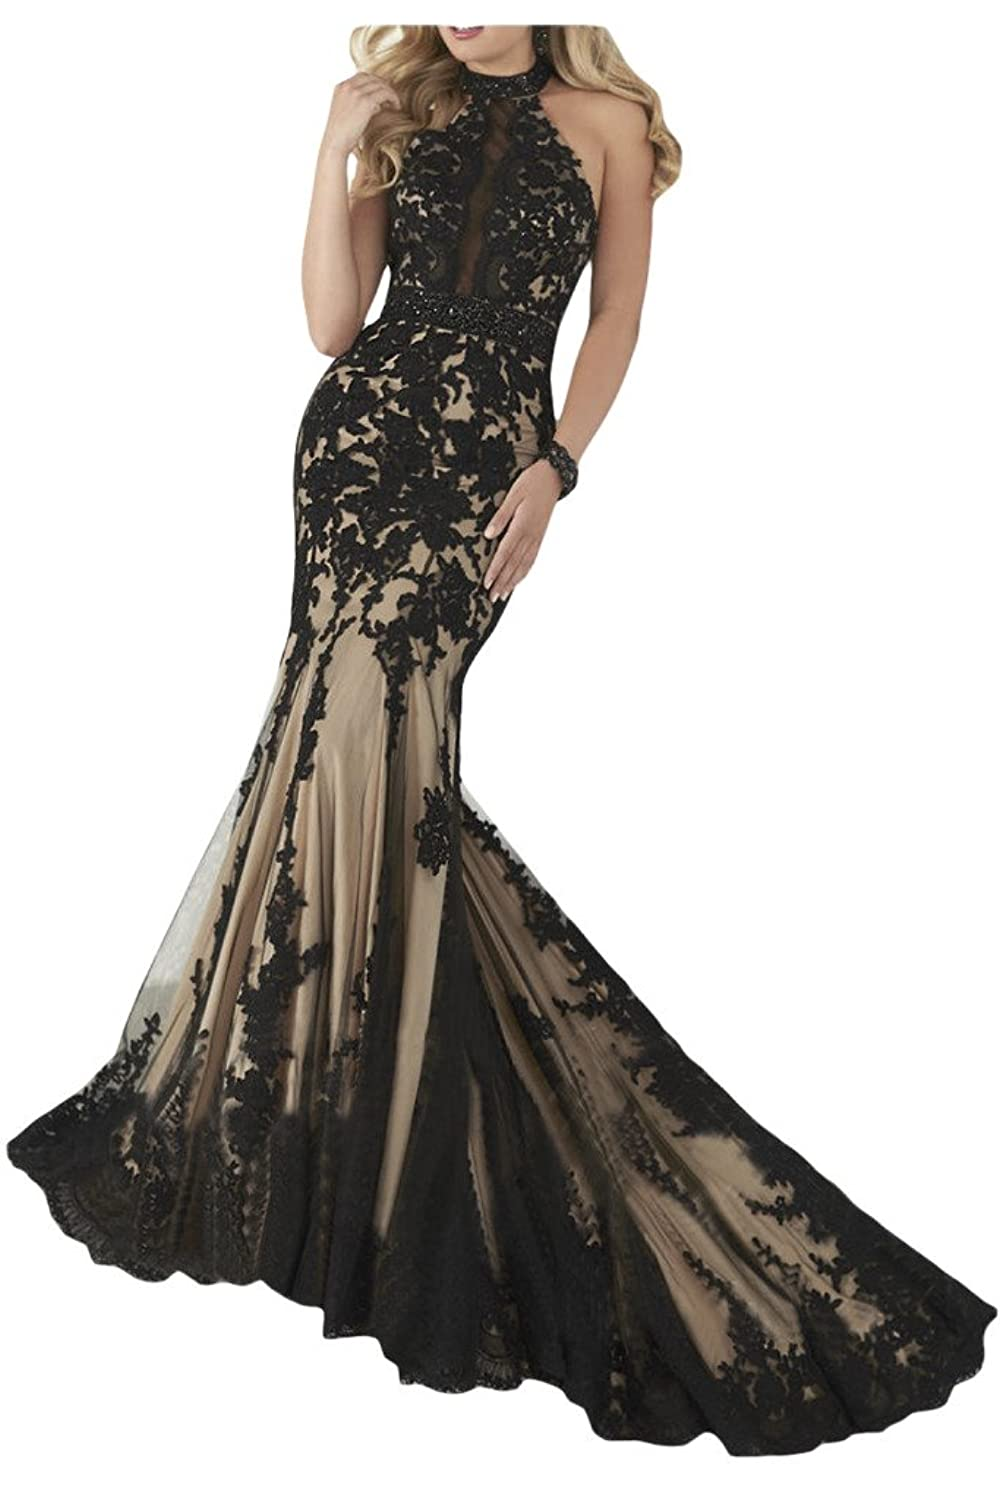 Sunvary Vintage Lace Mermaid Halter Backless Long Party Gowns Evening Gowns